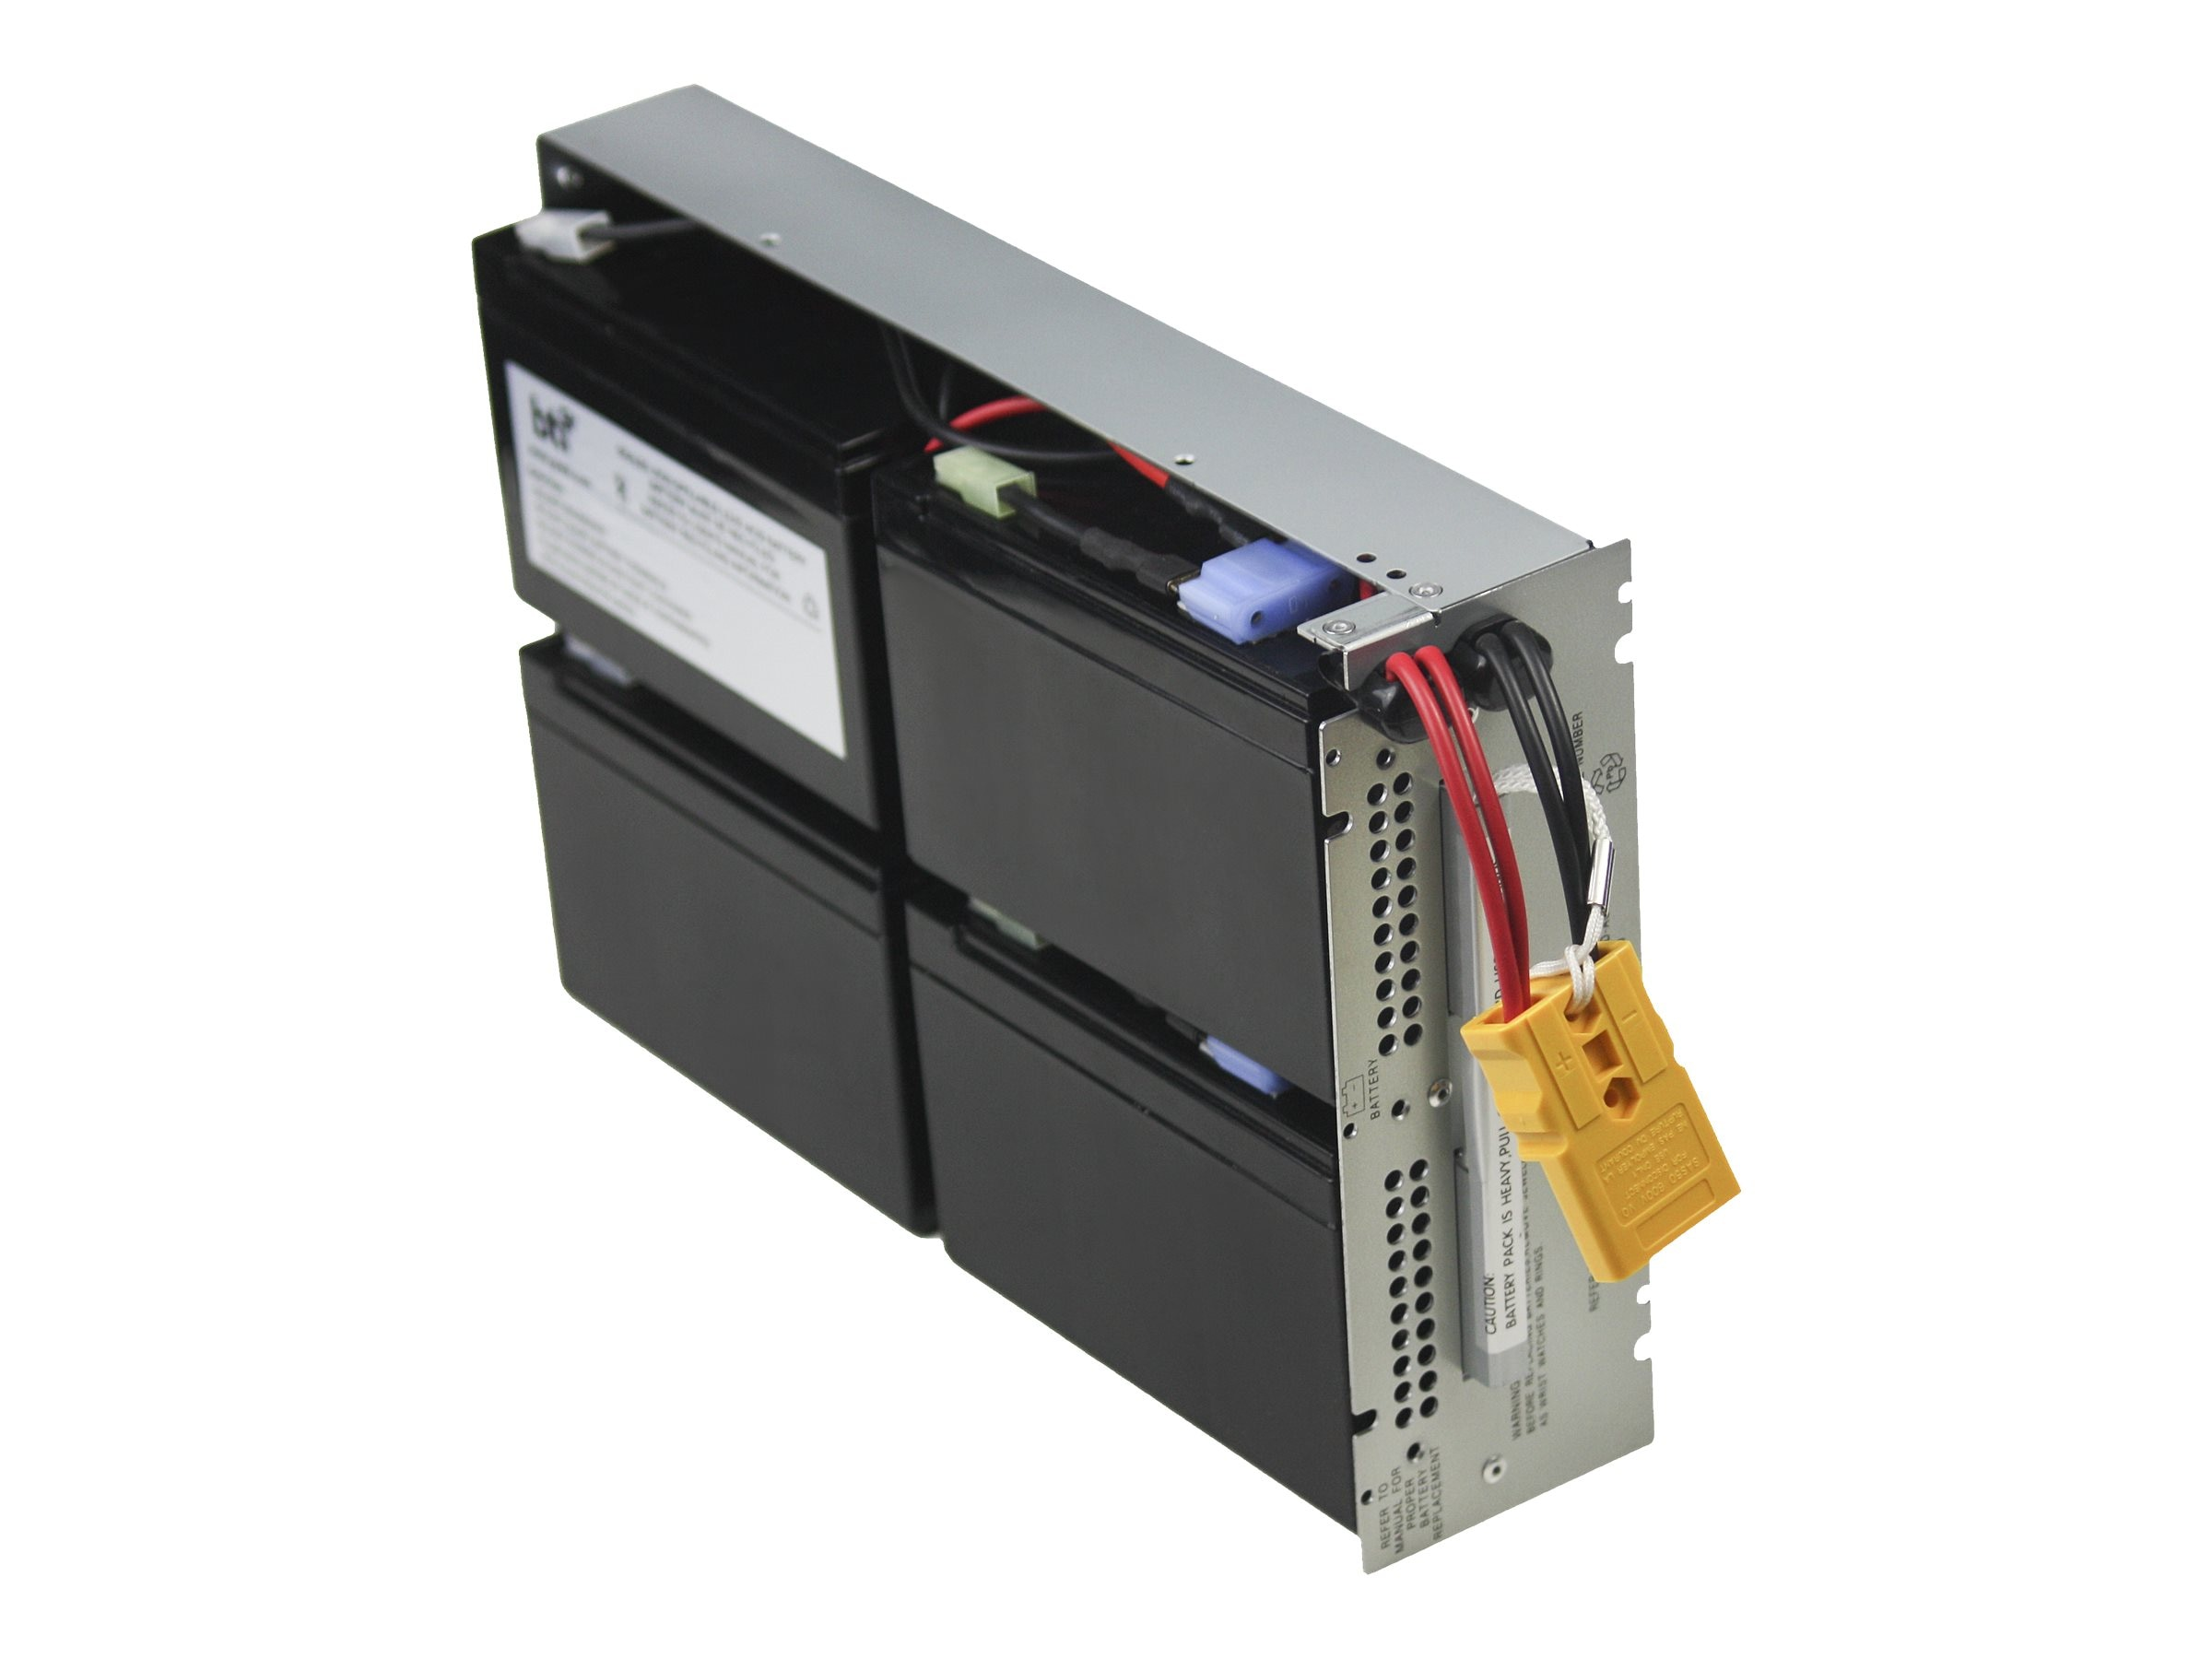 BTI Replacement UPS Battery for APC SMT1500RM2U RBC133 APCRBC133, APCRBC133-SLA133